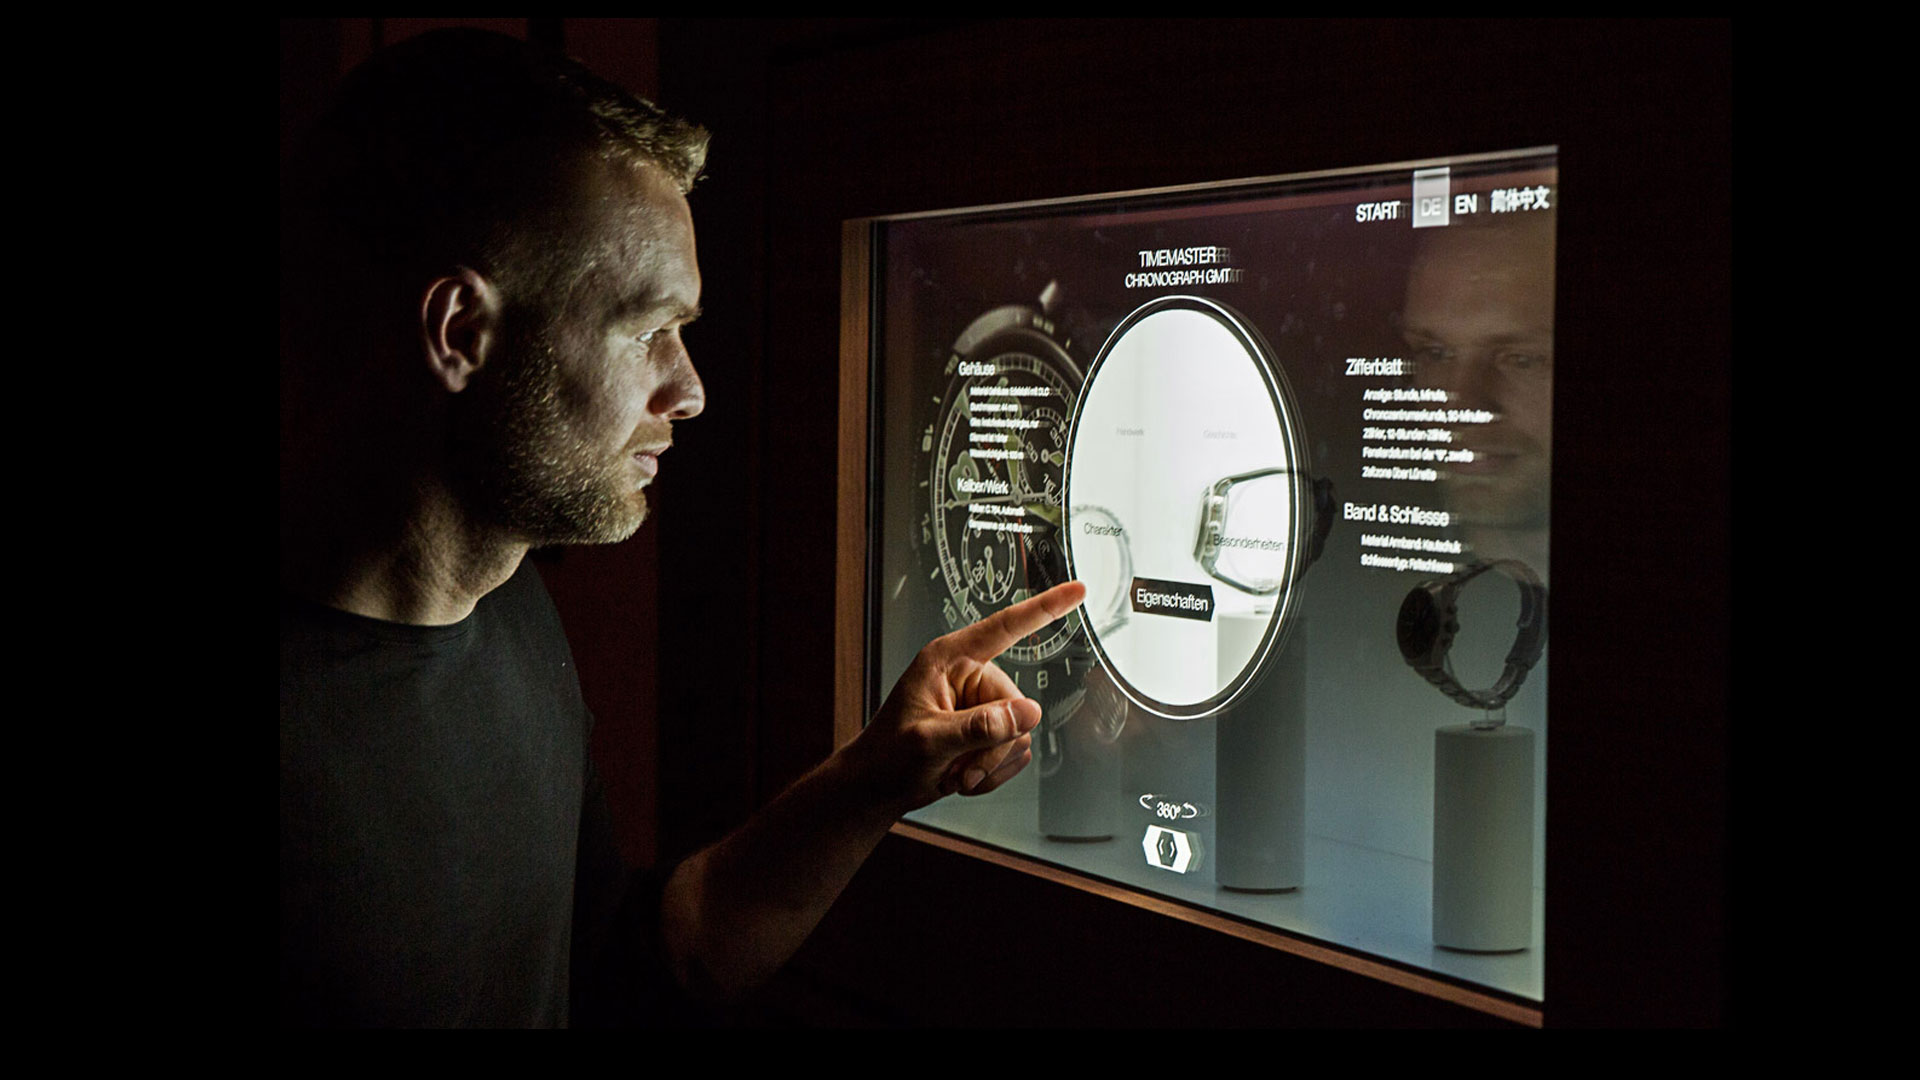 Retail Digital Touch Display